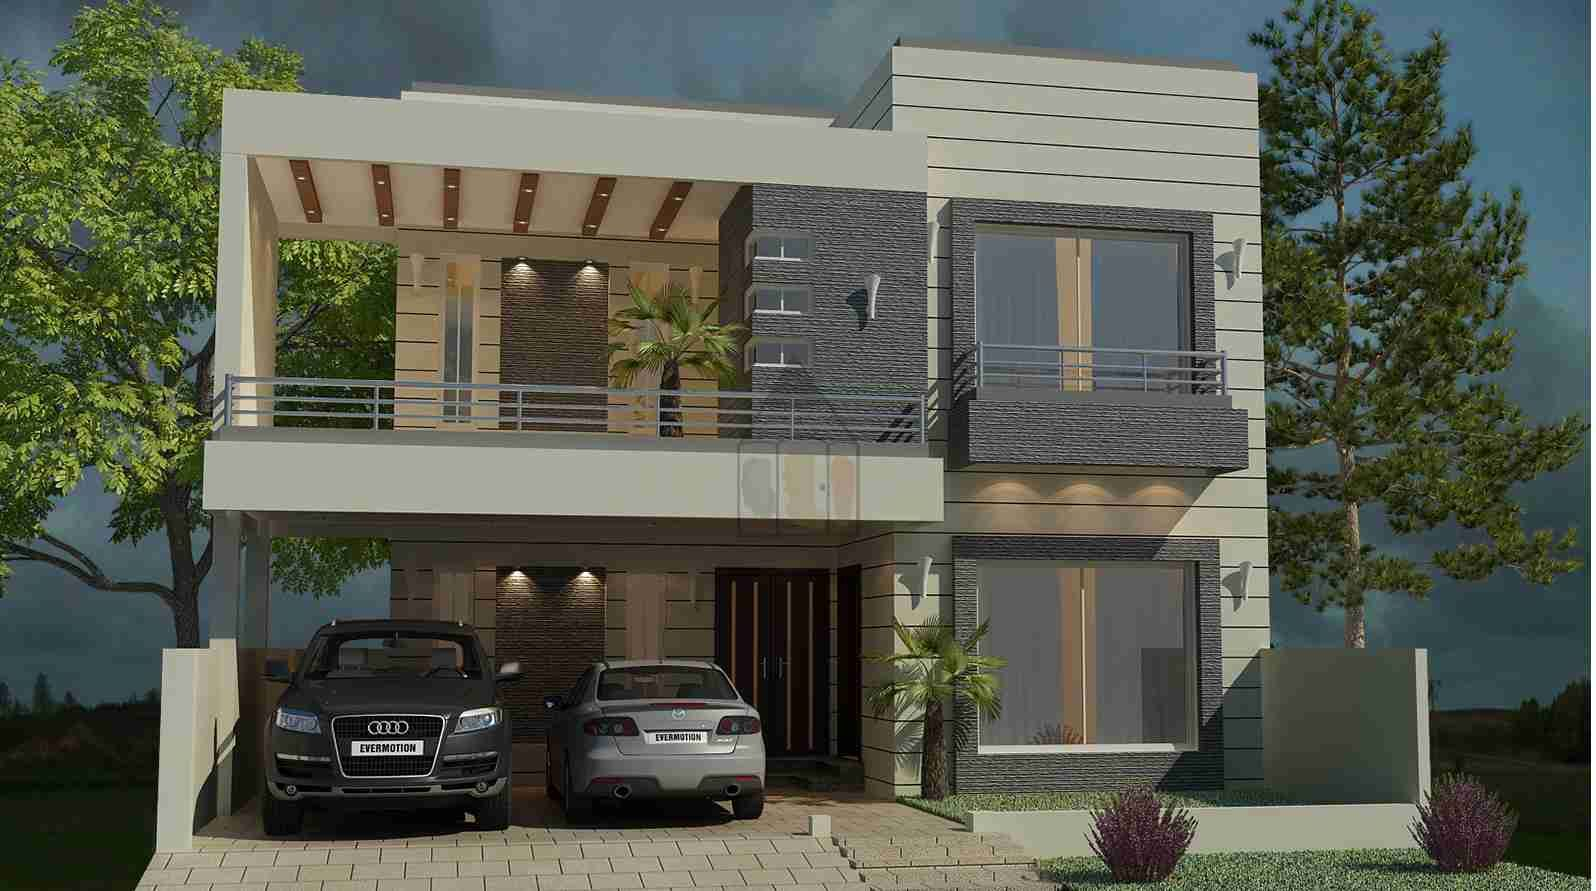 Modern residence islamabad home designs 10 marla house homes - Beautiful 10 Marla House Plan As Its Layout Plan Is Designed On 3 Stories And On